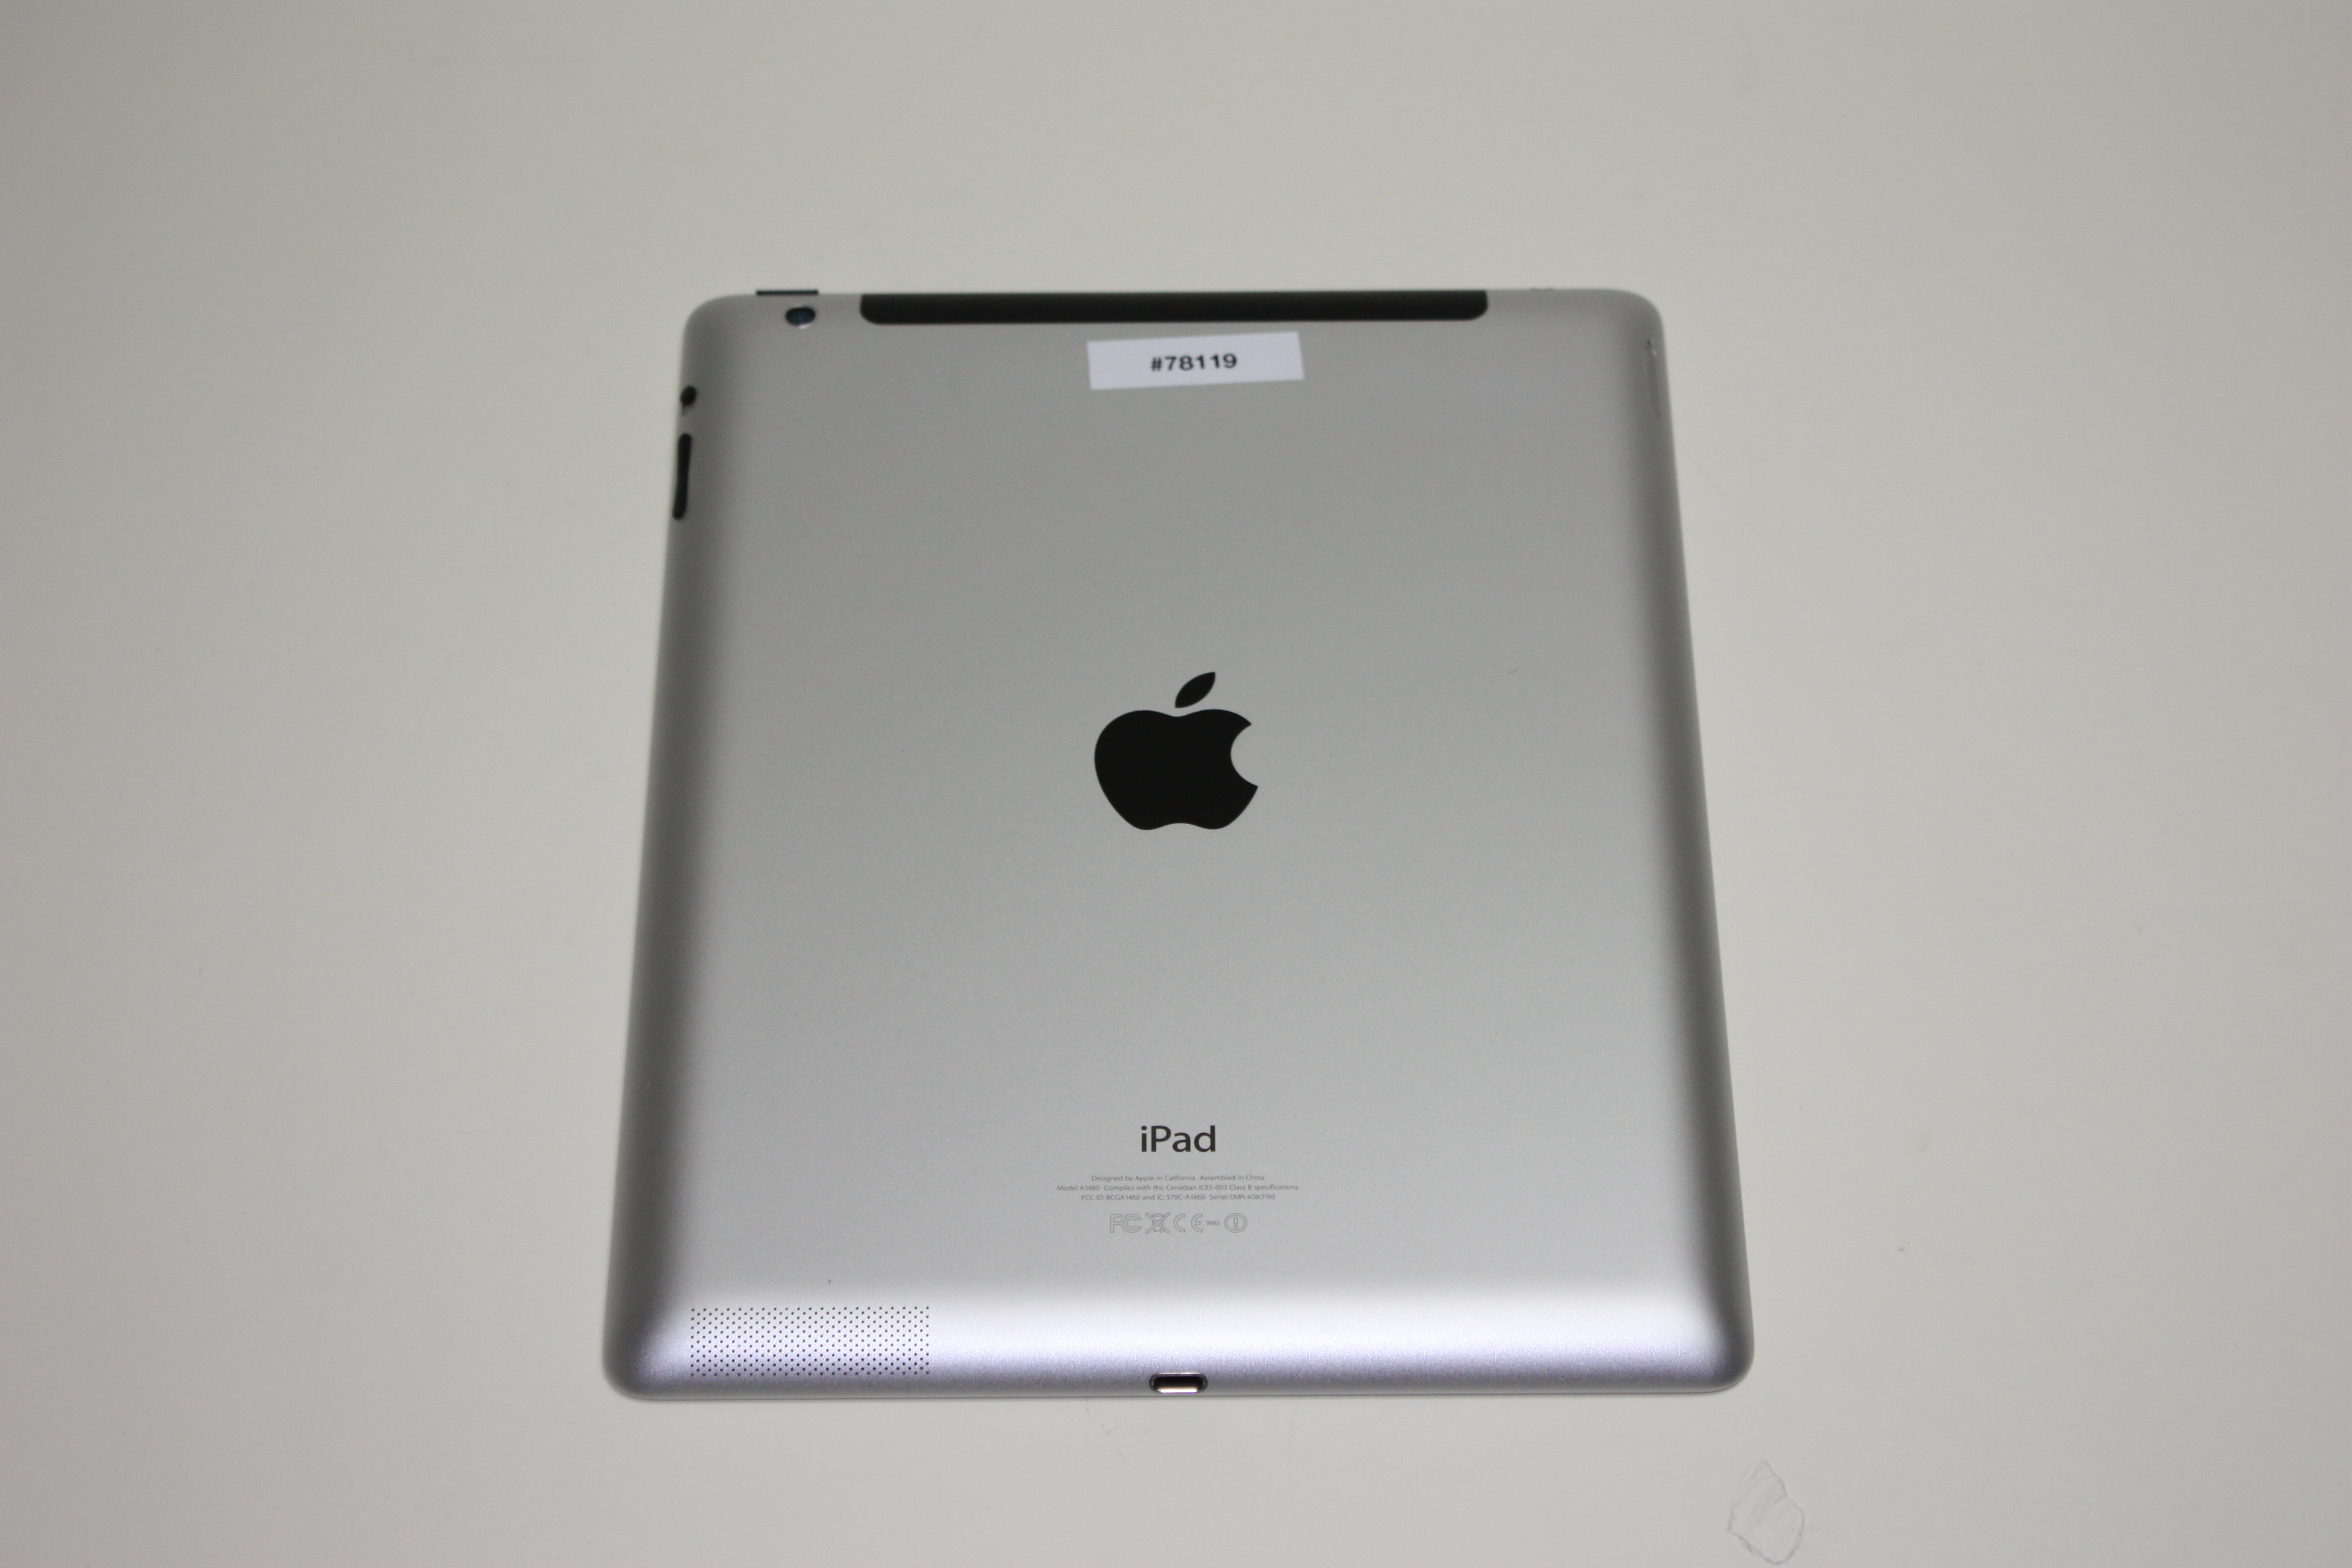 iPad 4th gen (Wi-Fi + 4G), 16 GB, Silver/White, Product age: 52 months, image 2